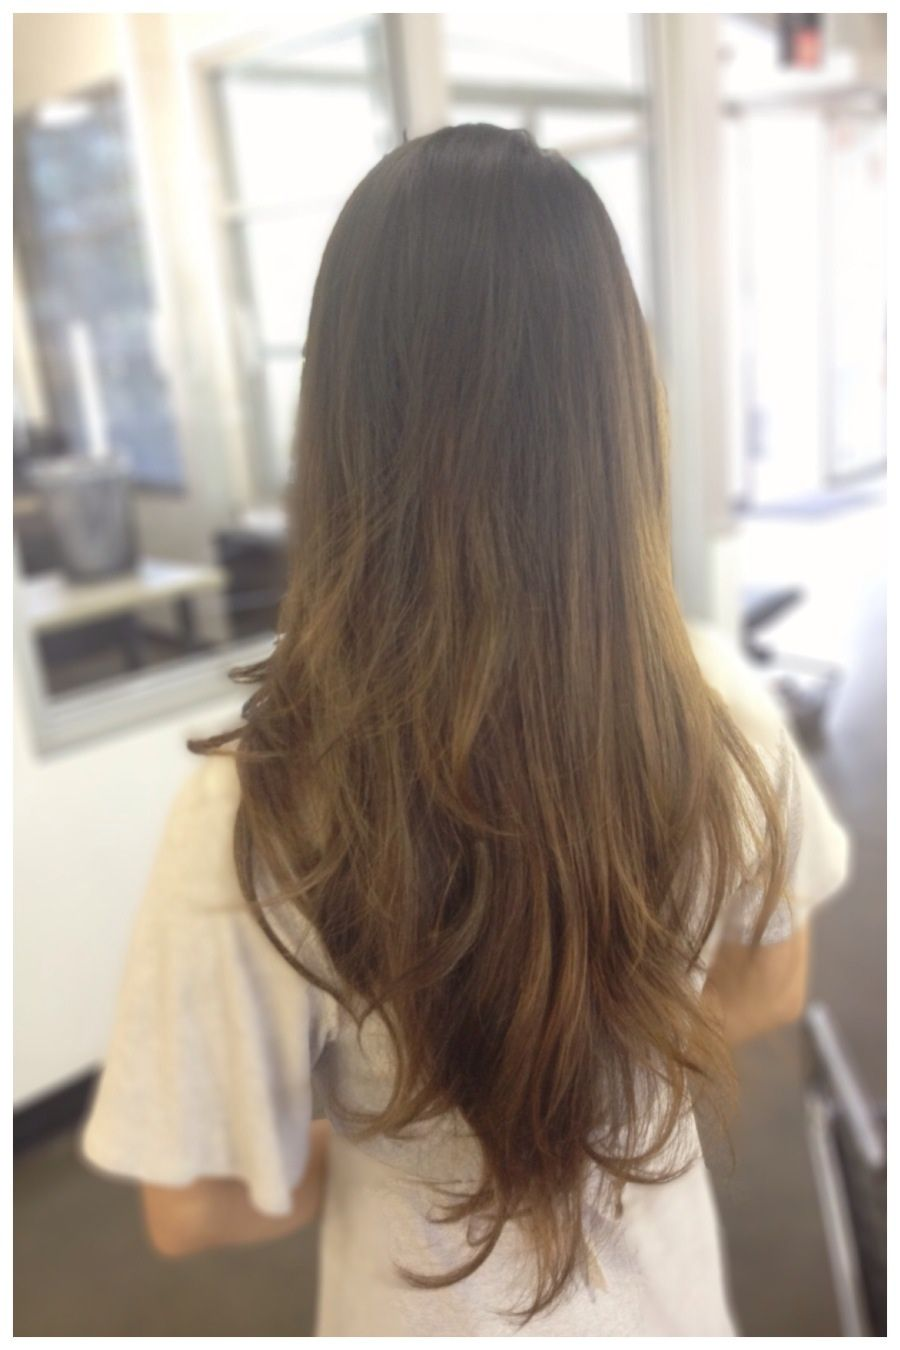 Long Hair Balayage Razored Carsten Cut Brown Hair Ombr Color Melt